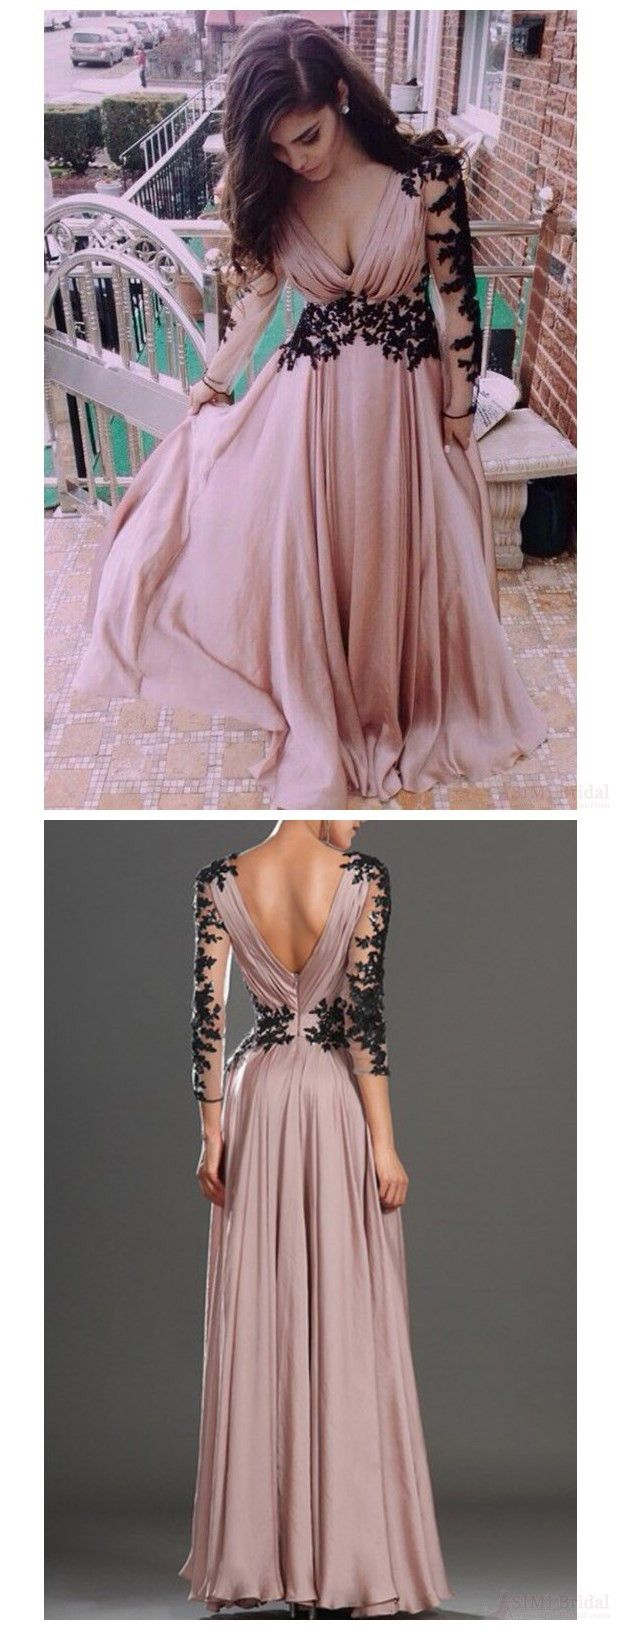 V-neck prom dresses,sexy prom dress,prom,#promdresses #simibridal